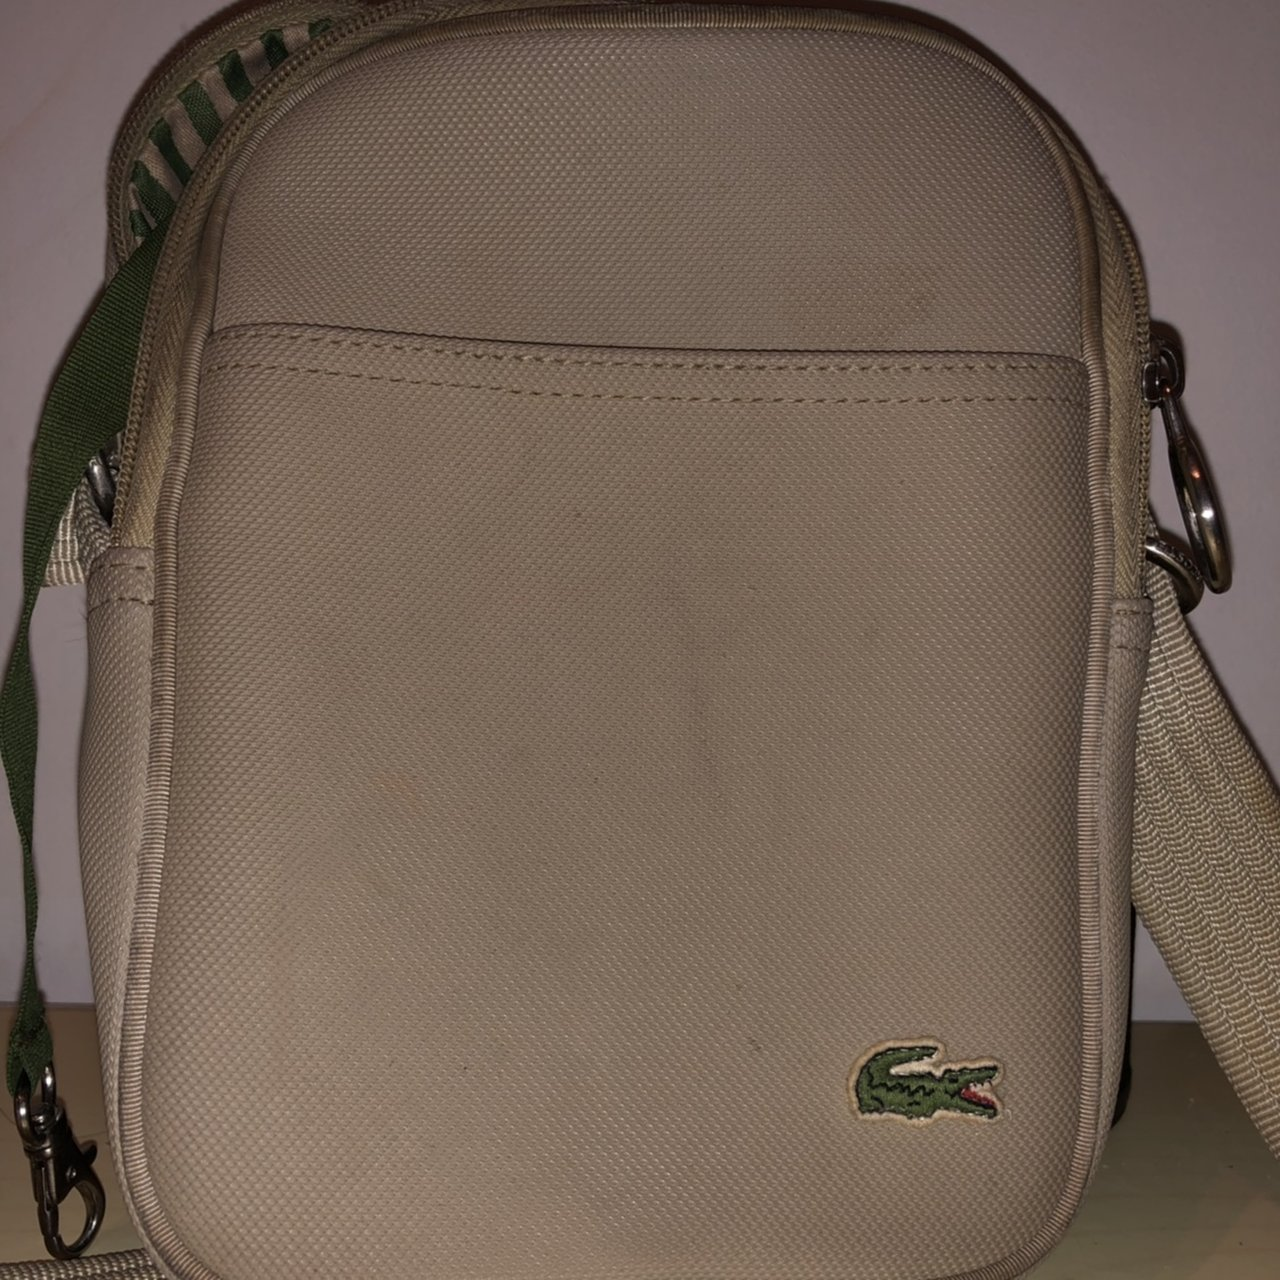 02b20a8bf7d1 Lacoste manbag In cream From 2007